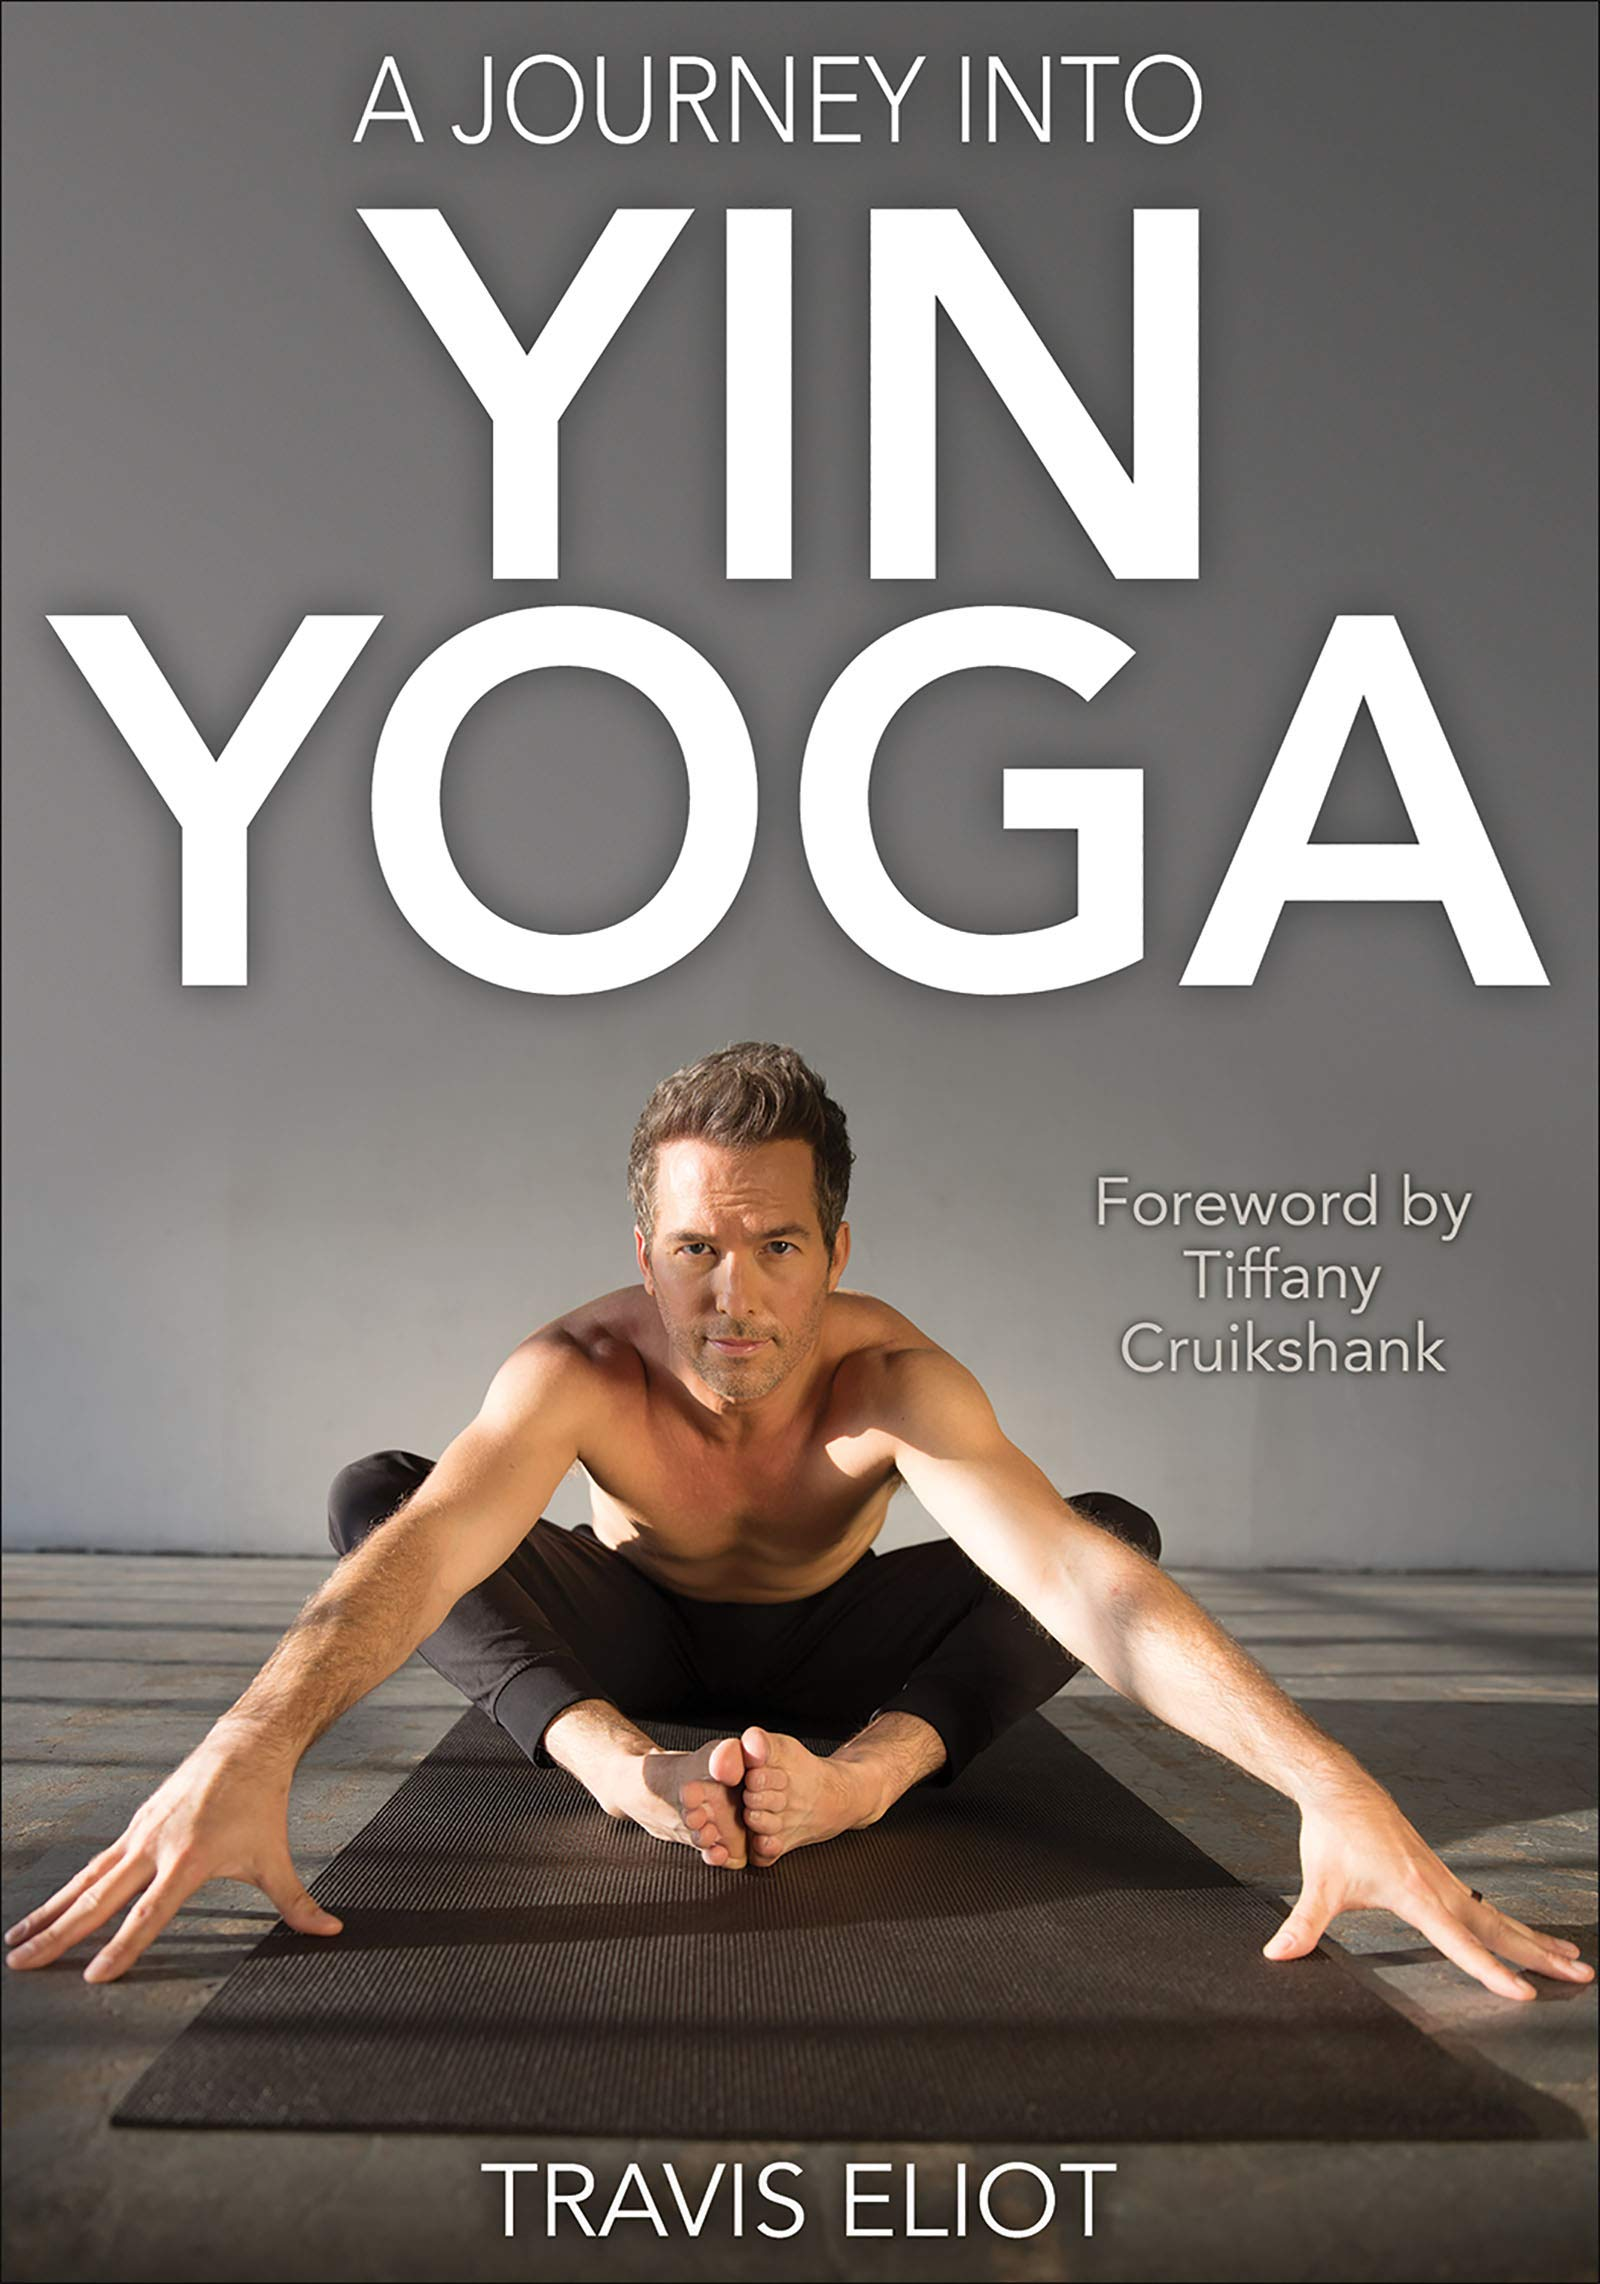 A Journey into Yin Yoga: Amazon.es: Travis Eliot: Libros en ...